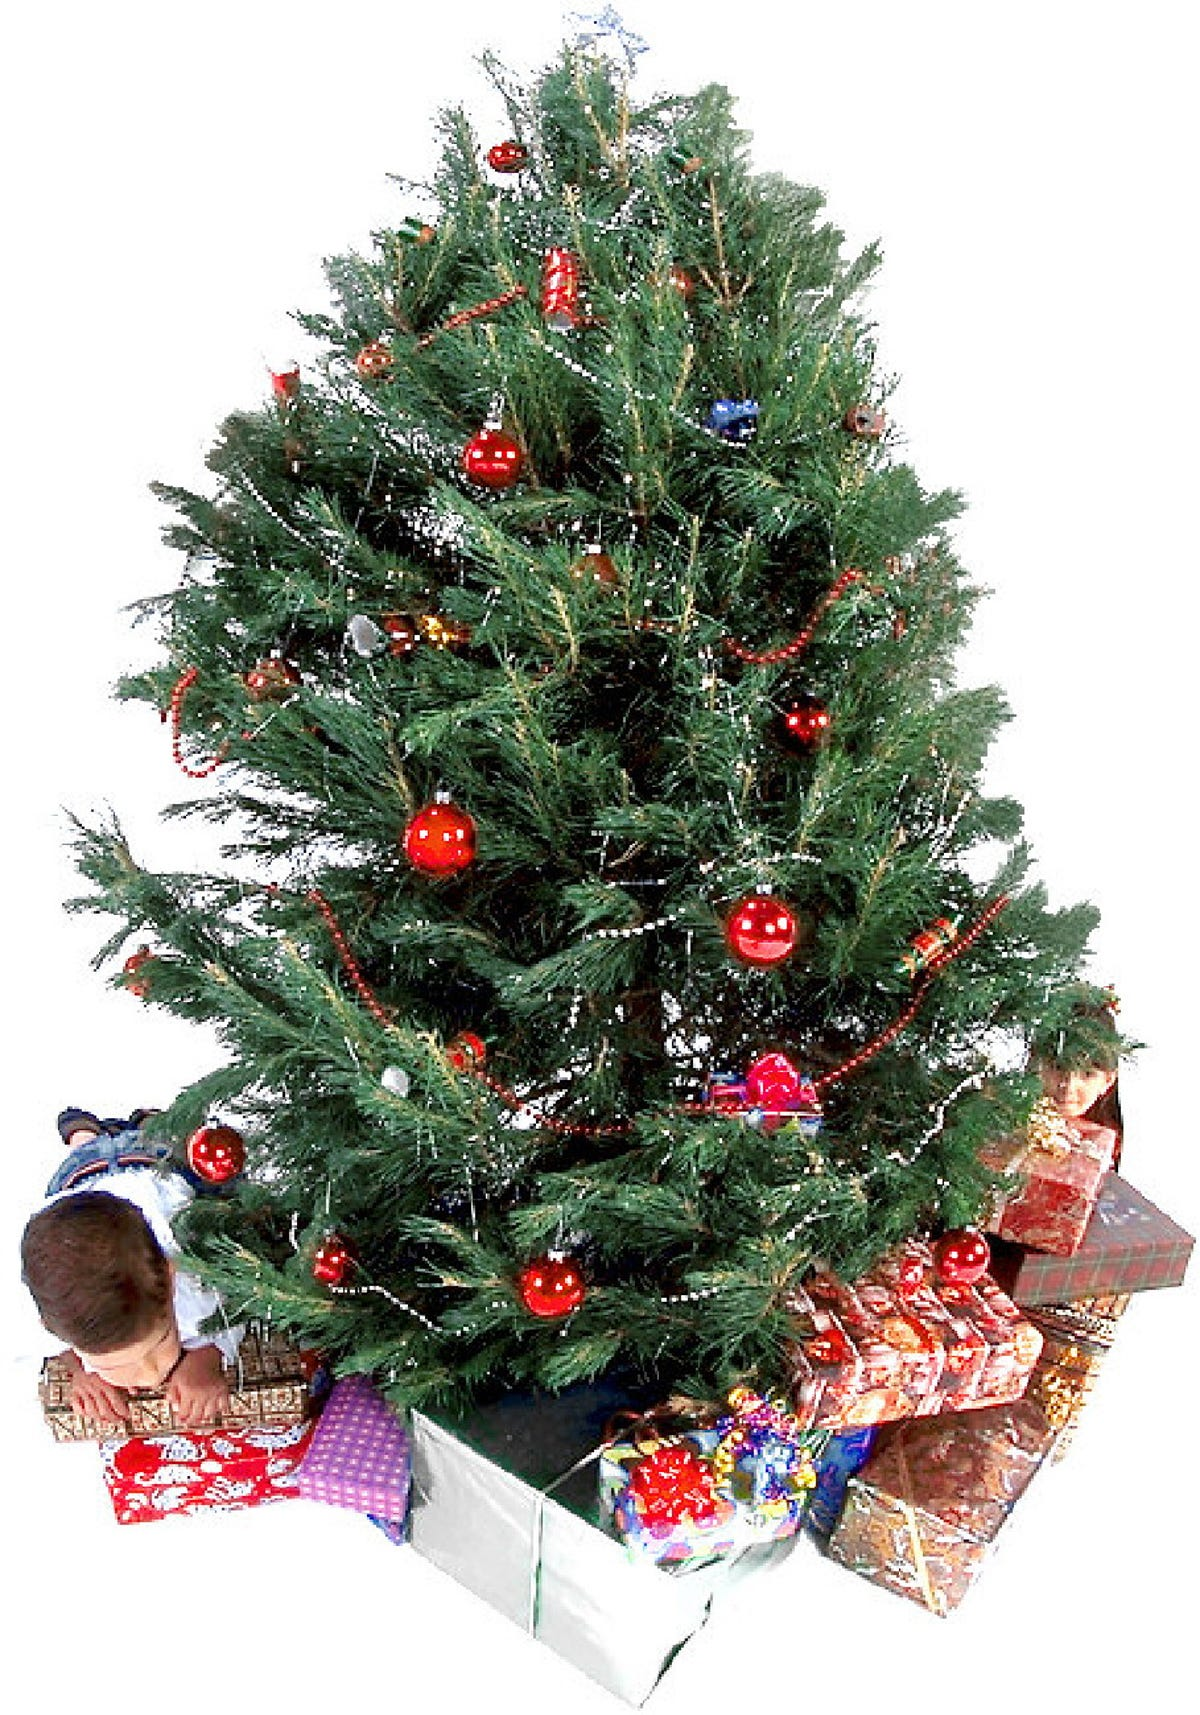 Christmas Tree Recycle Design.Got A Live Christmas Tree You Can Recycle